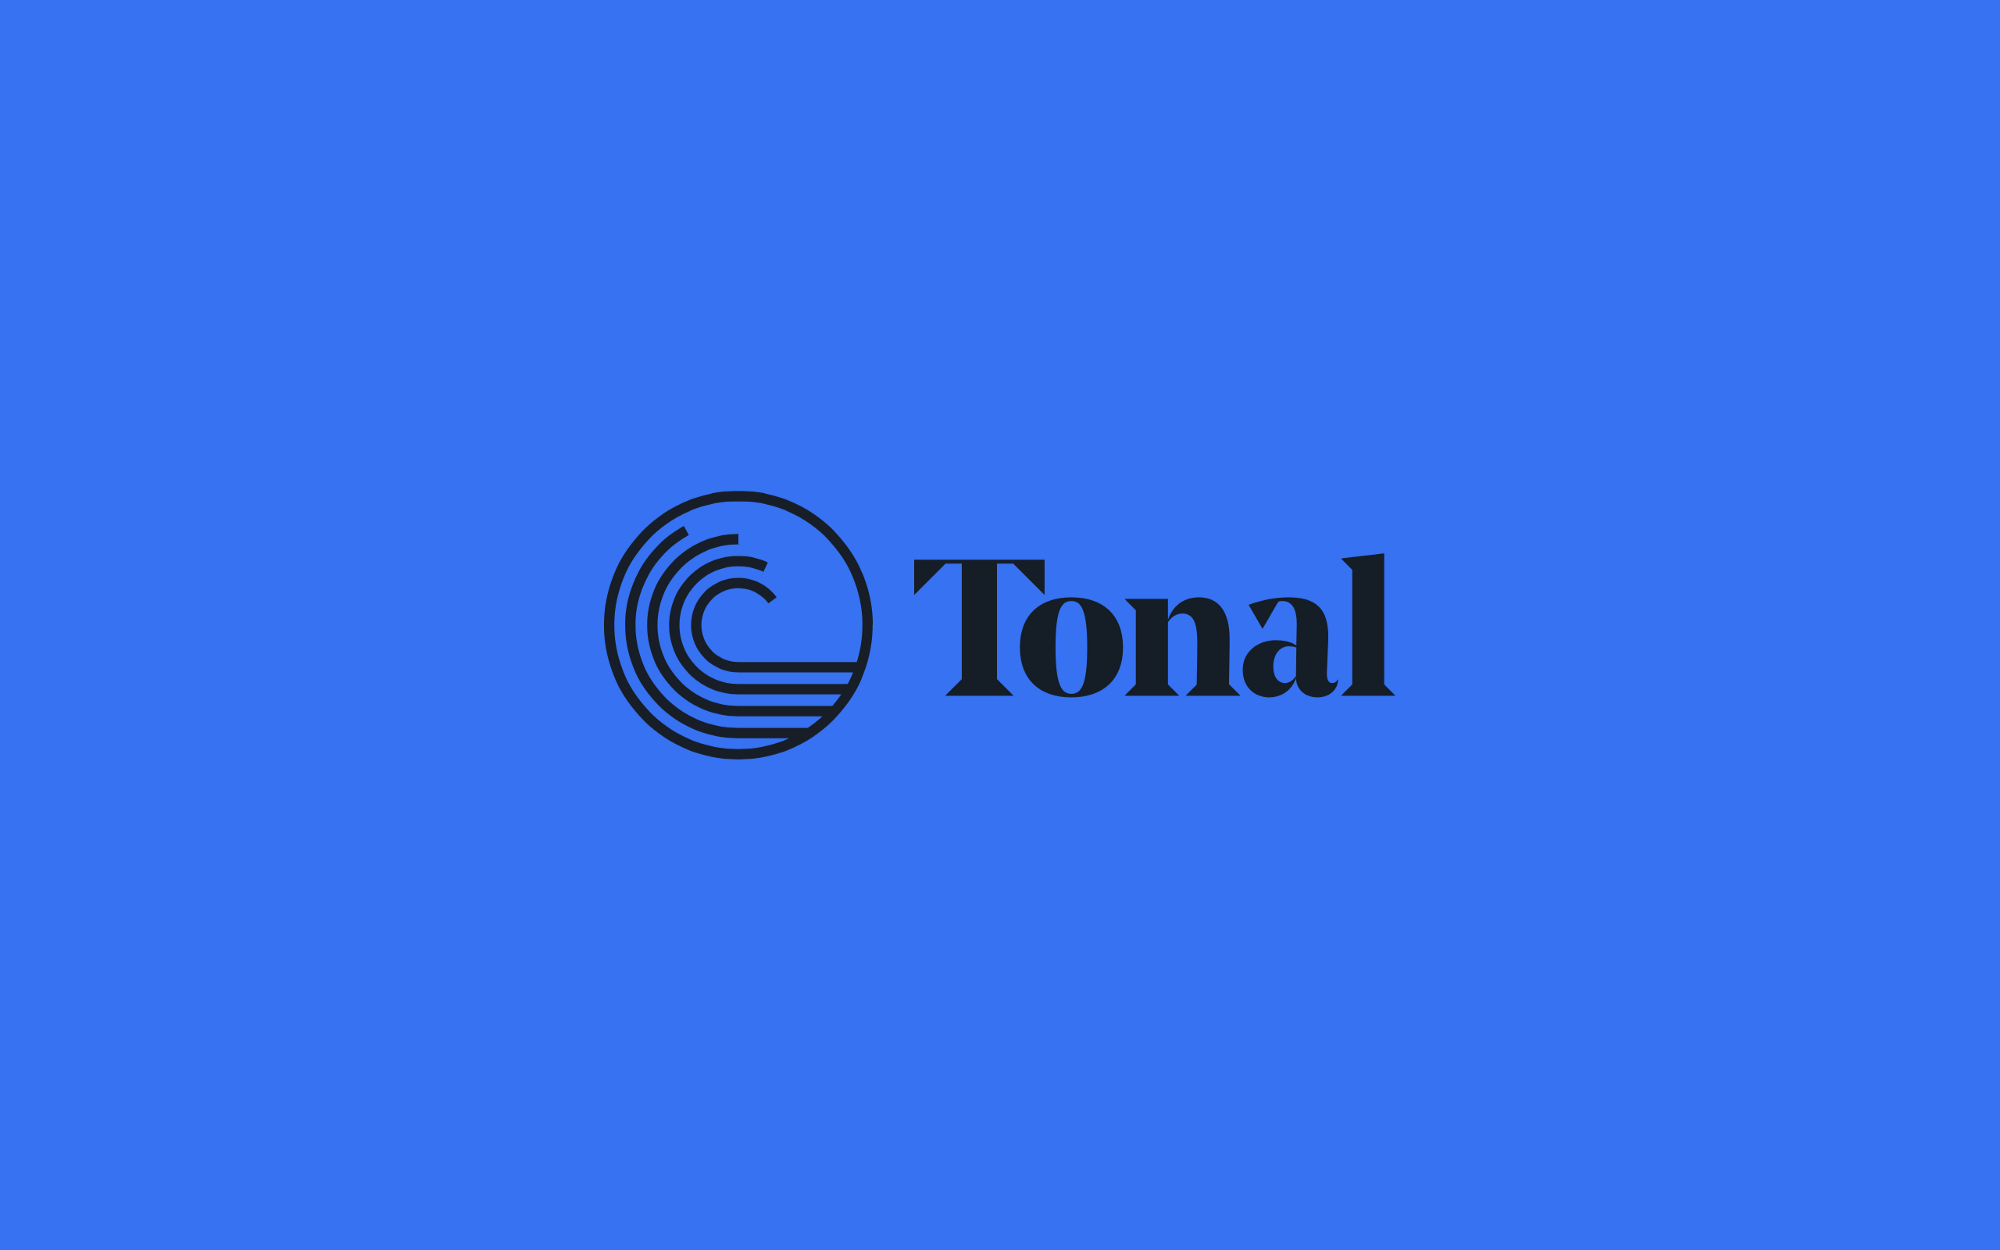 Introducing Tonal: A Minimalist Music App for Collectors and